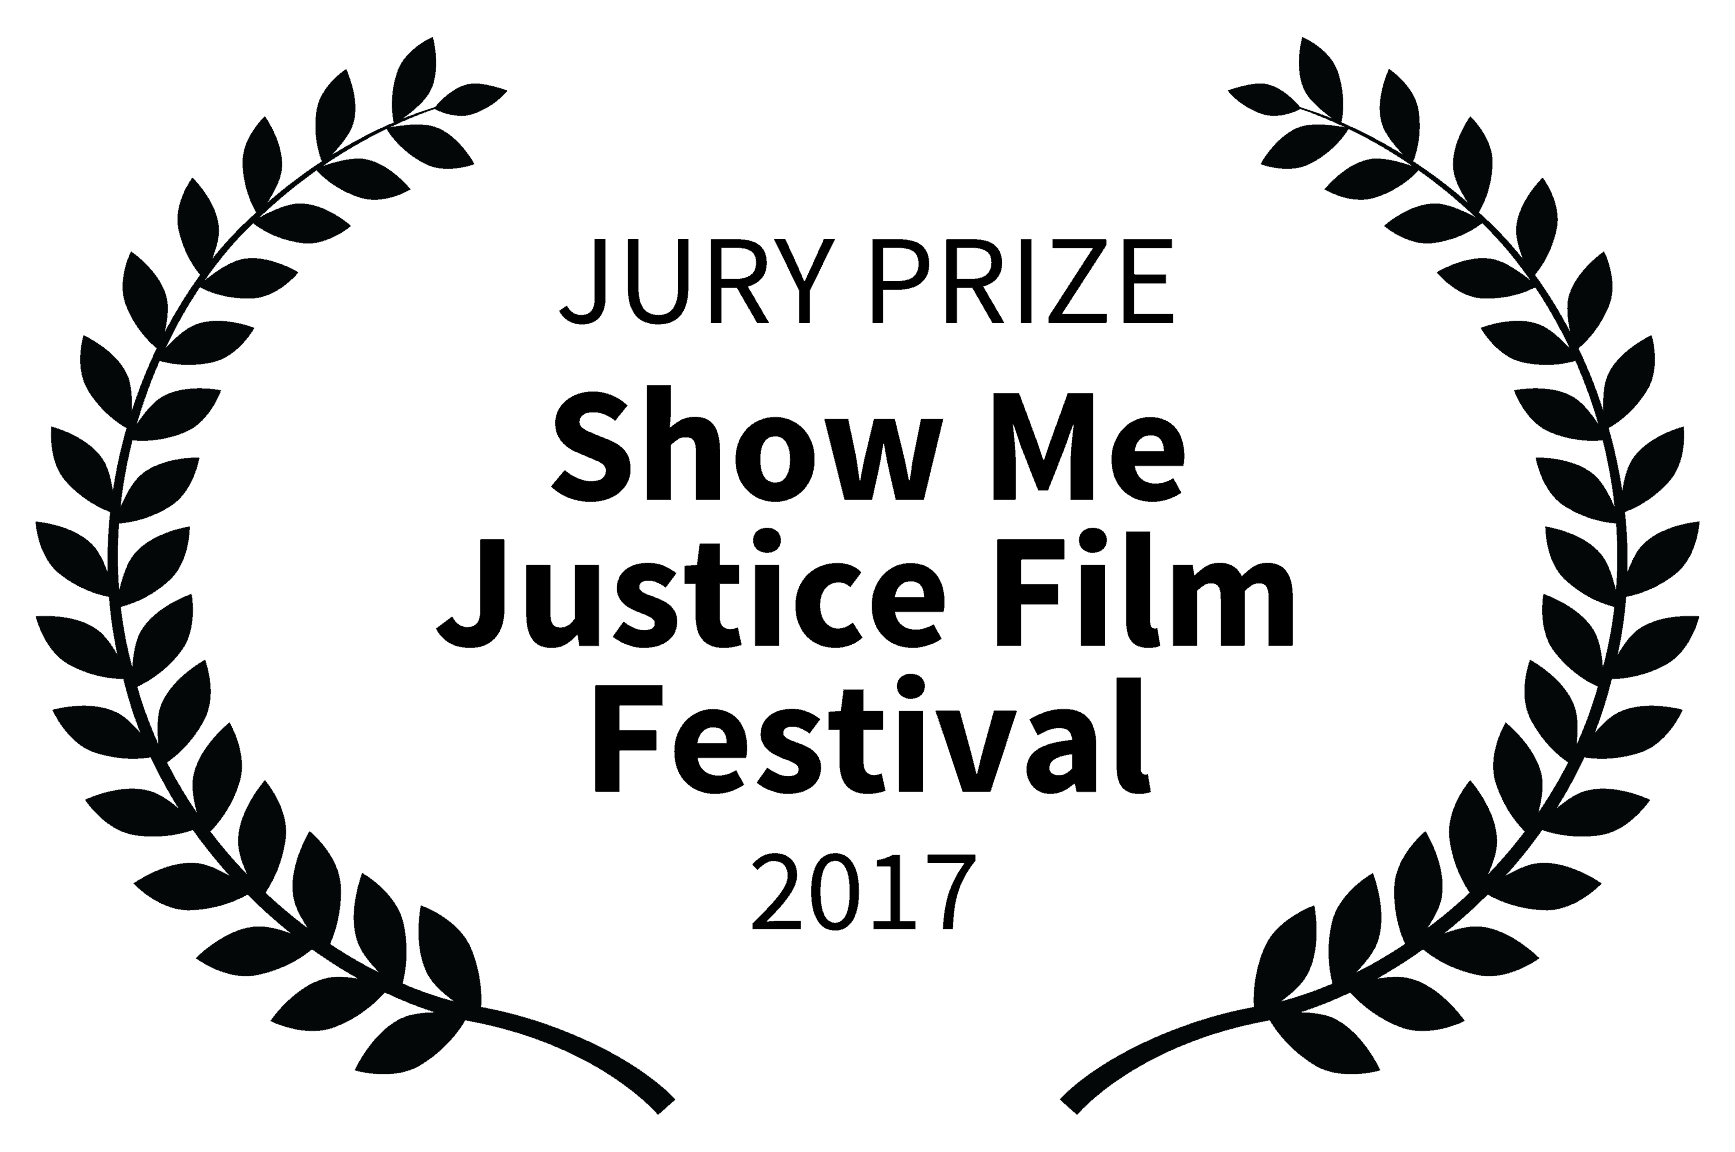 Film festival laurel - two olive branches surround text that reads Jury Prize Show Me Justice Film Festival 2017